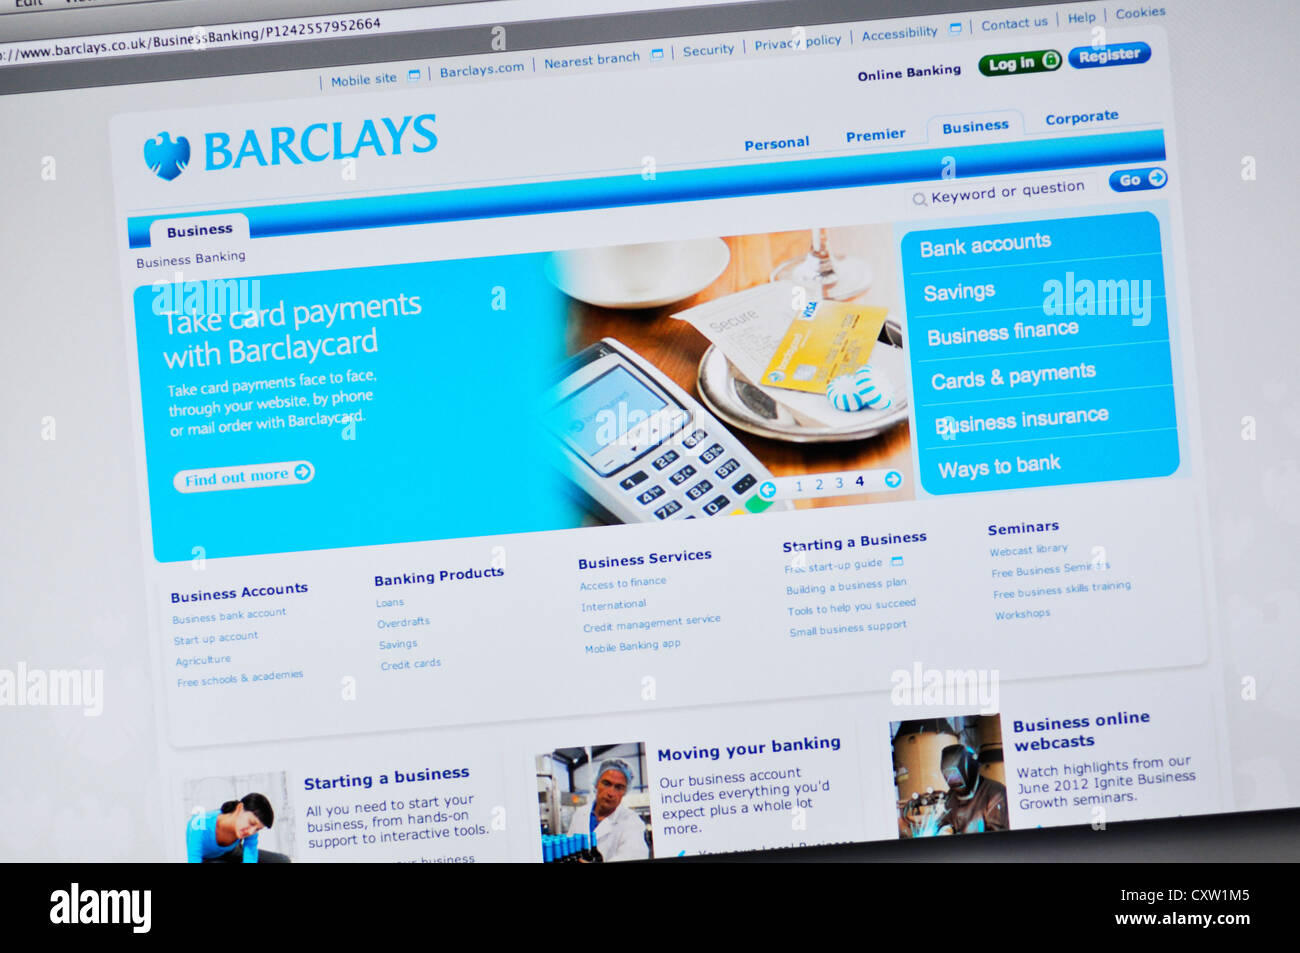 Barclays website - online banking Stock Photo: 50951941 - Alamy